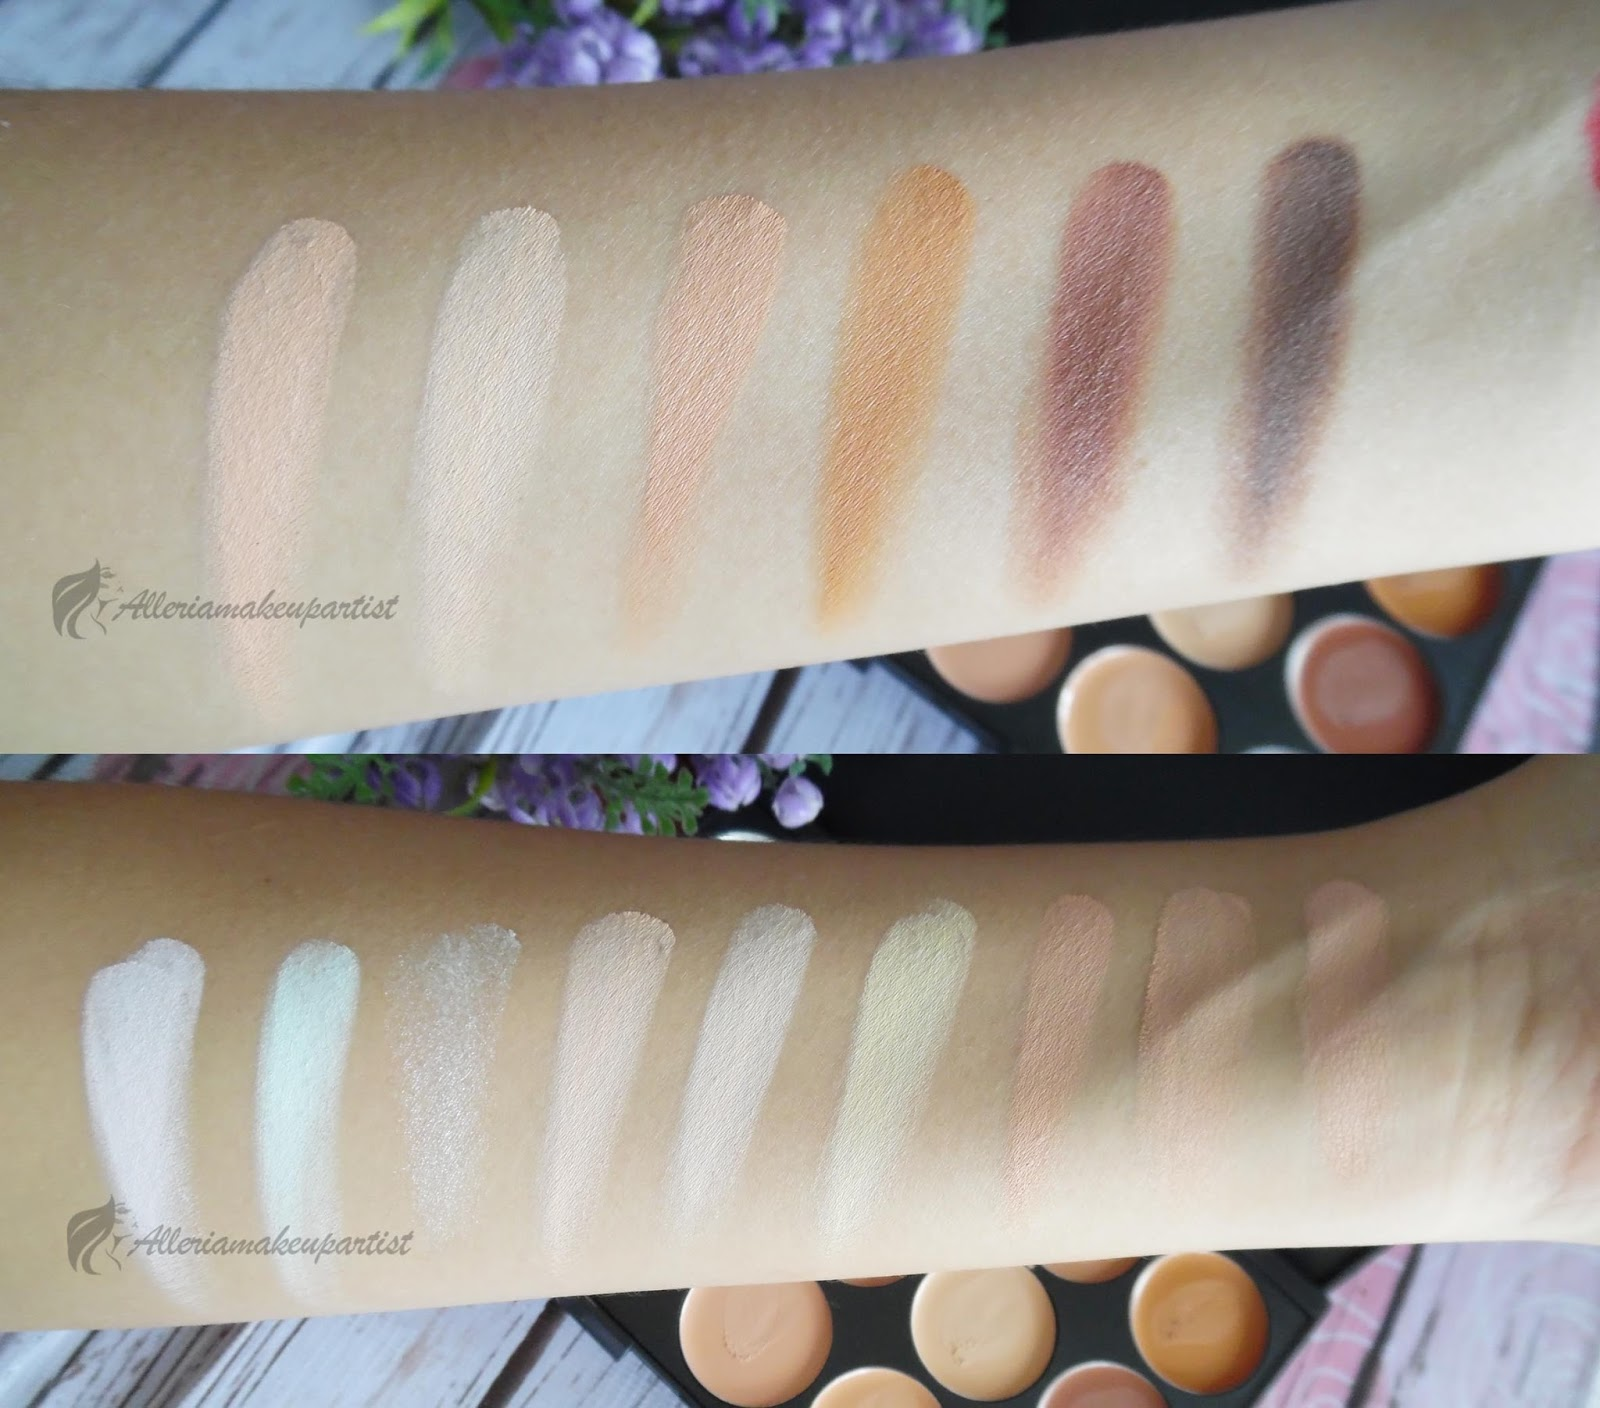 eclipse-palette-swatch-review.jpg